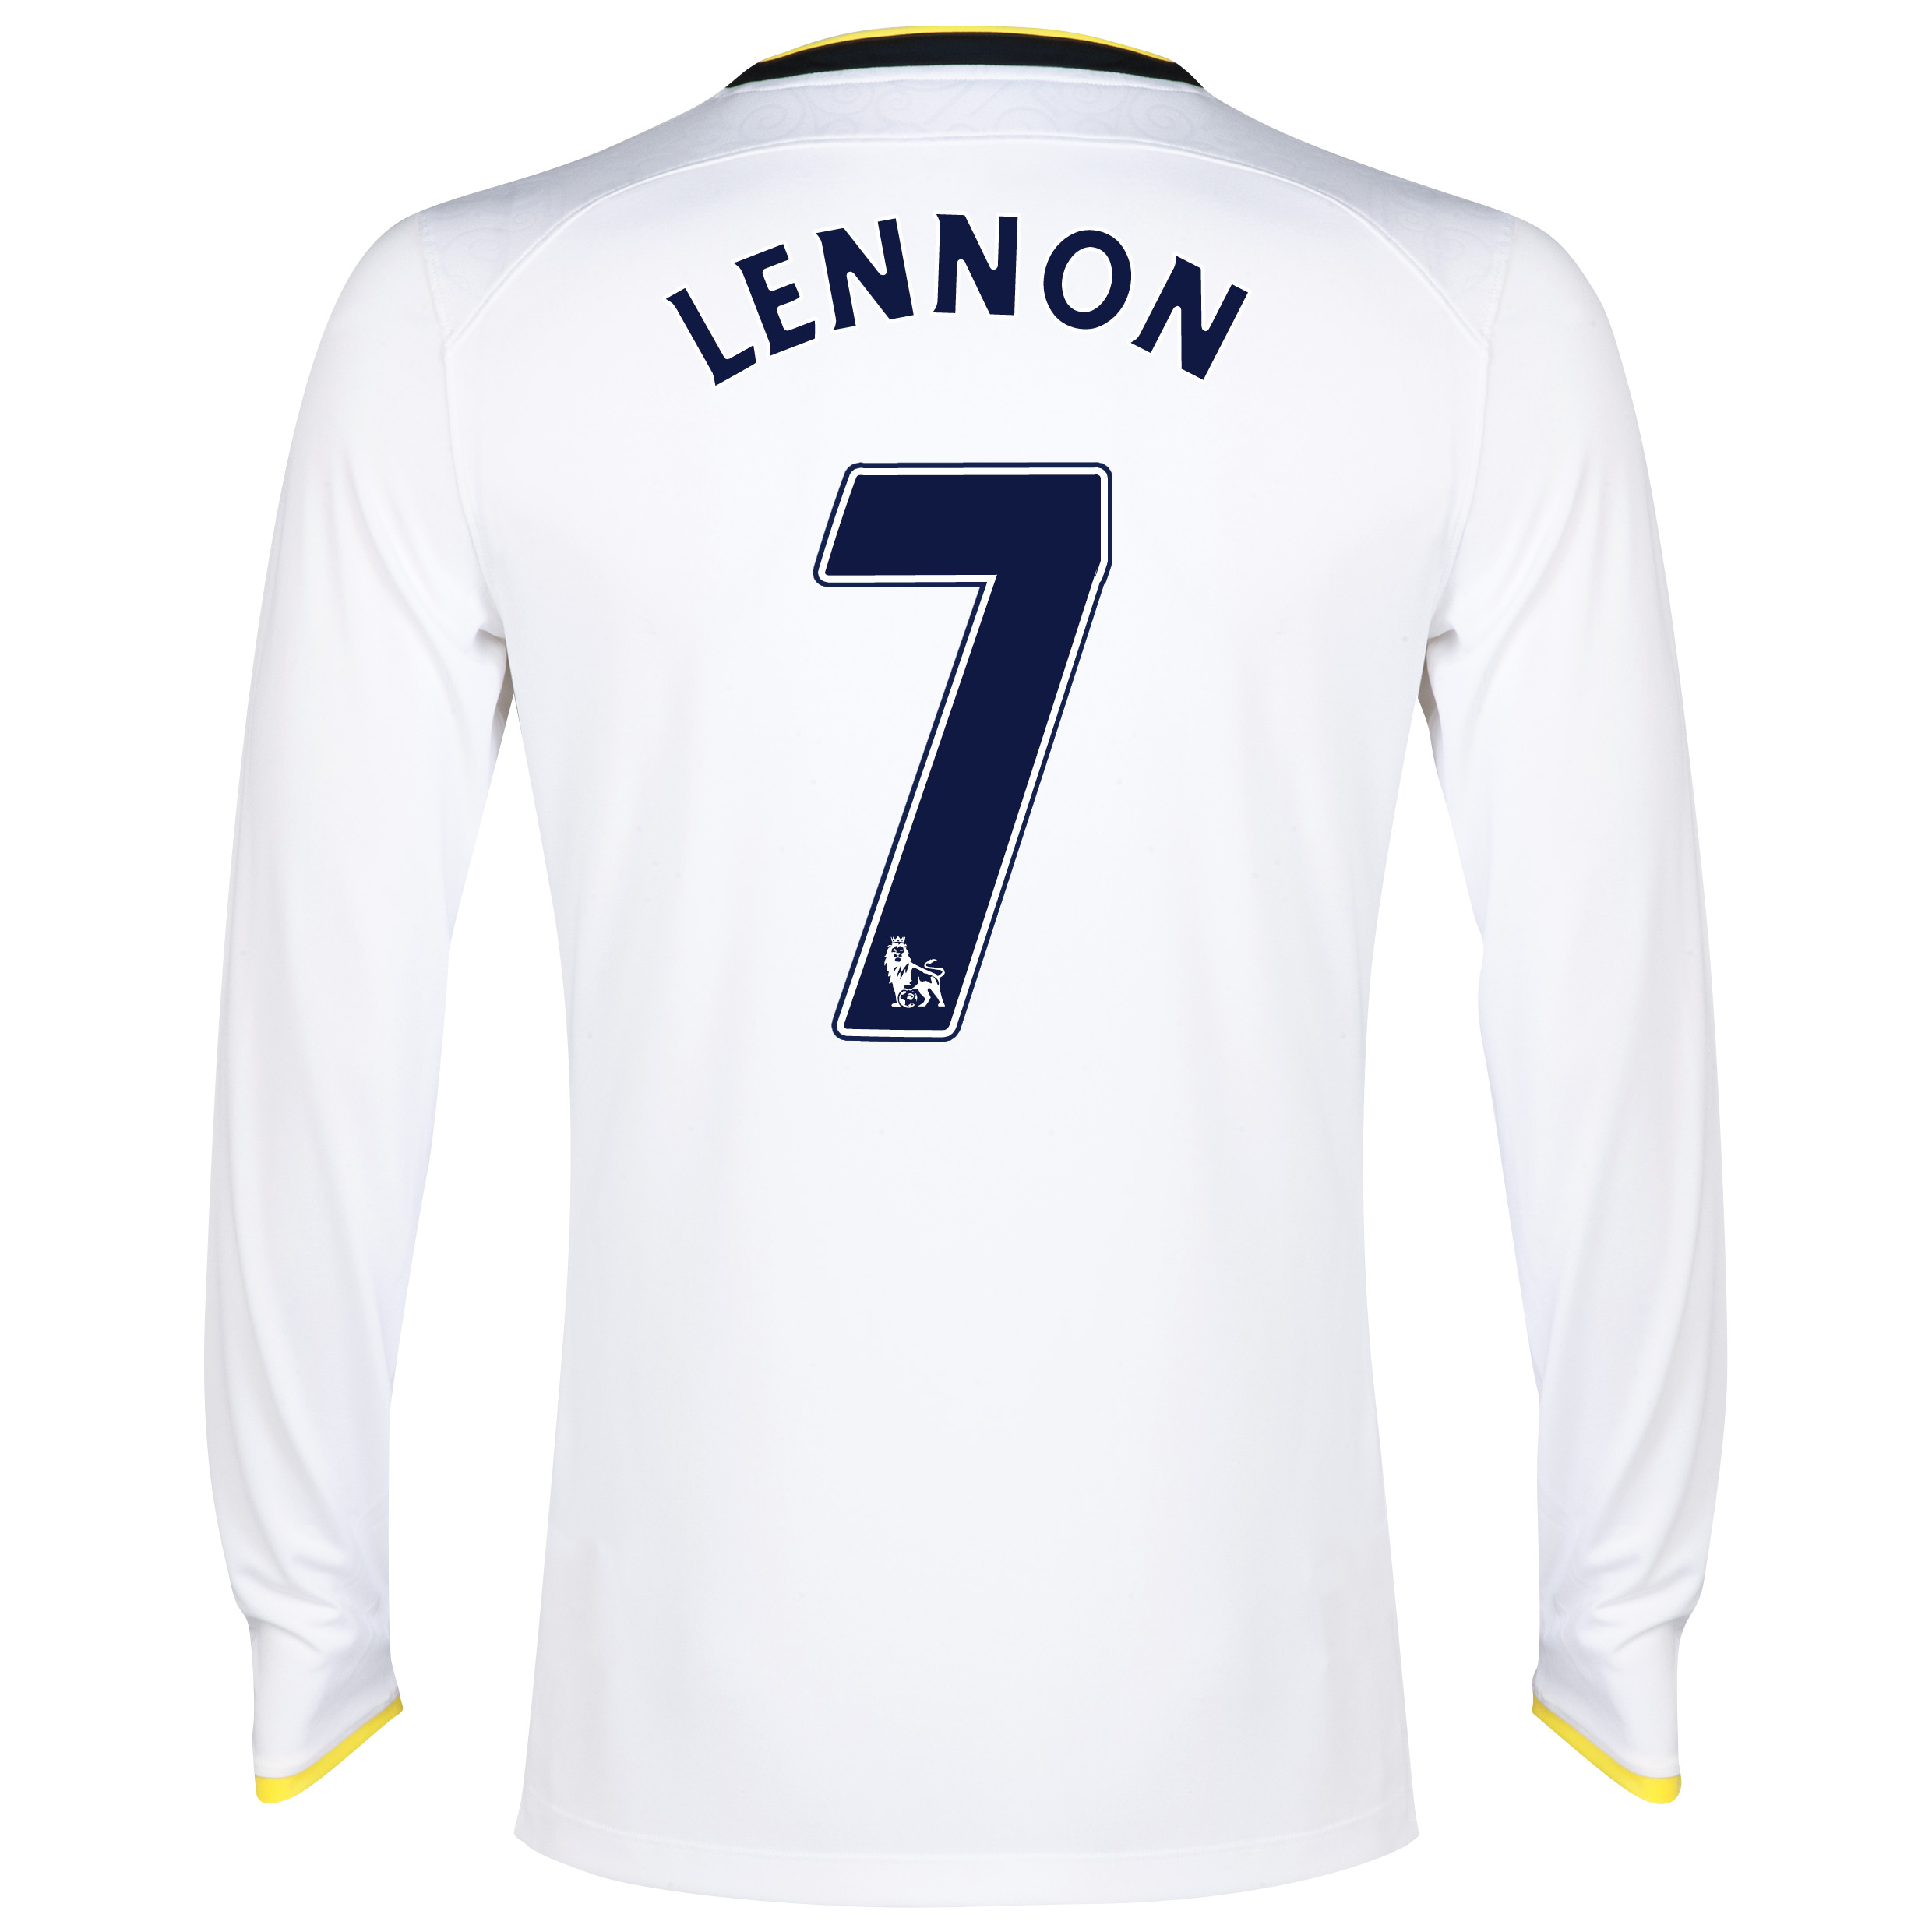 Tottenham Hotspur Home Shirt 2014/15 - Long Sleeve with Lennon 7 printing